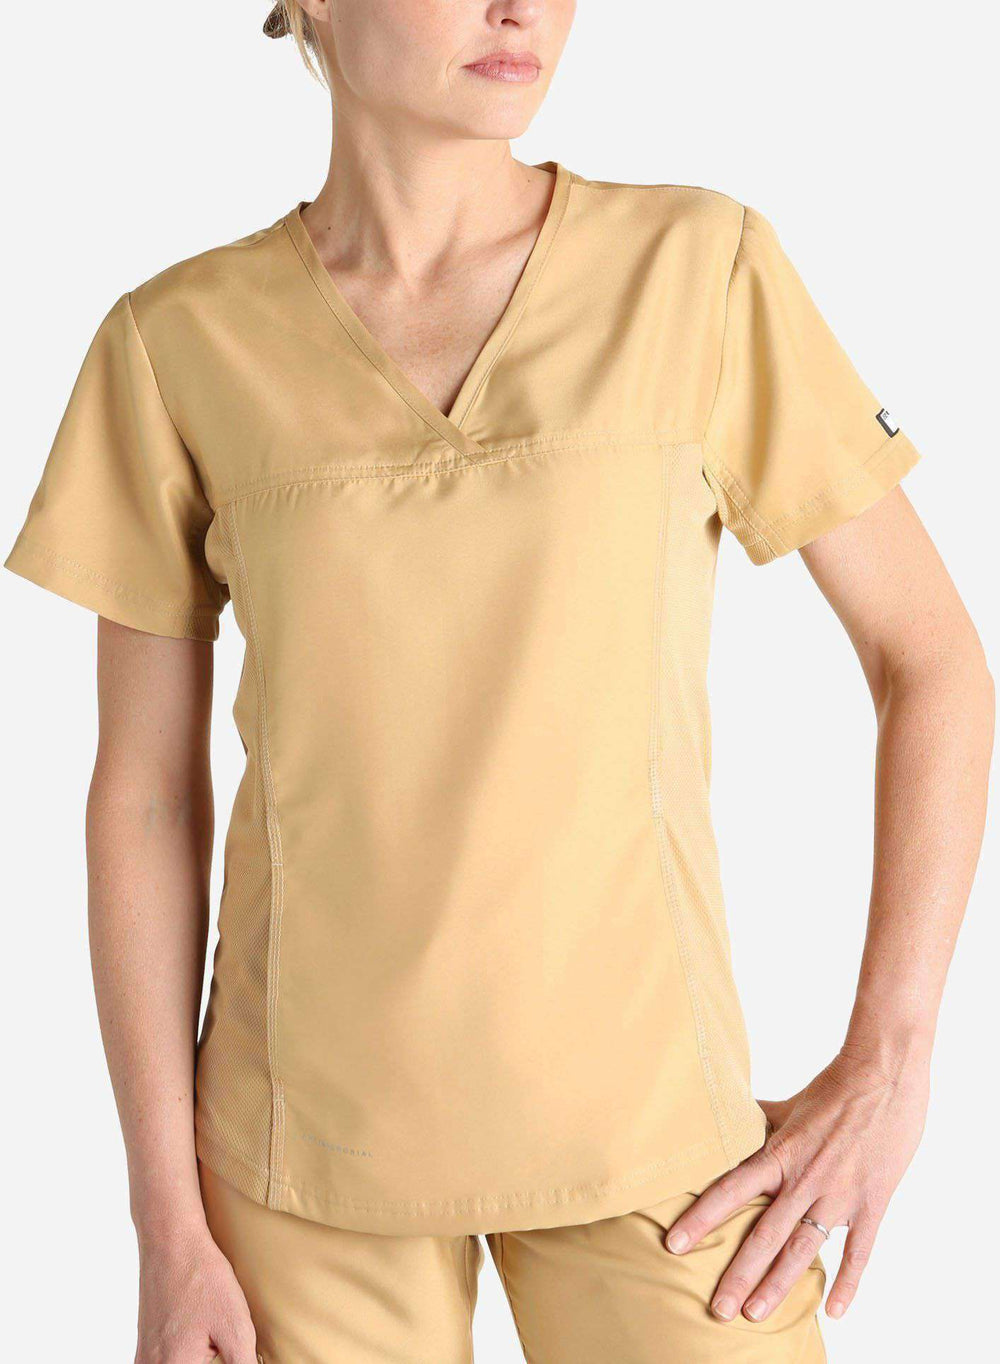 Women's Hidden Pocket Scrub Top